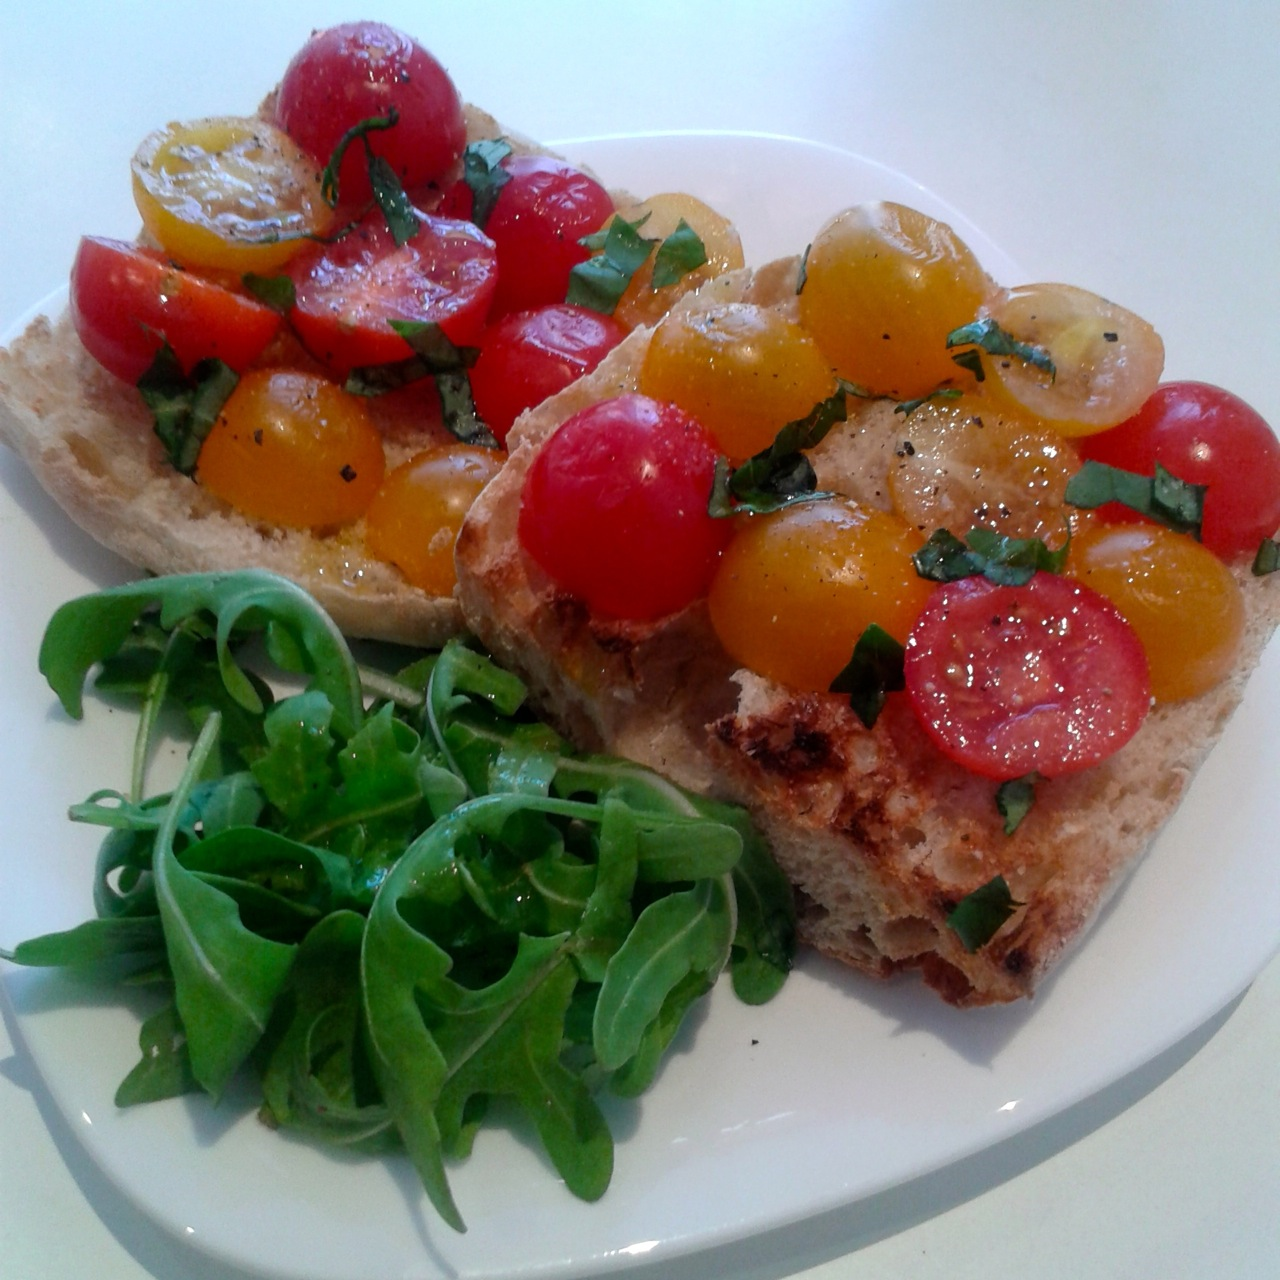 https://i1.wp.com/fatgayvegan.com/wp-content/uploads/2014/07/bruschetta.jpg?fit=1280%2C1280